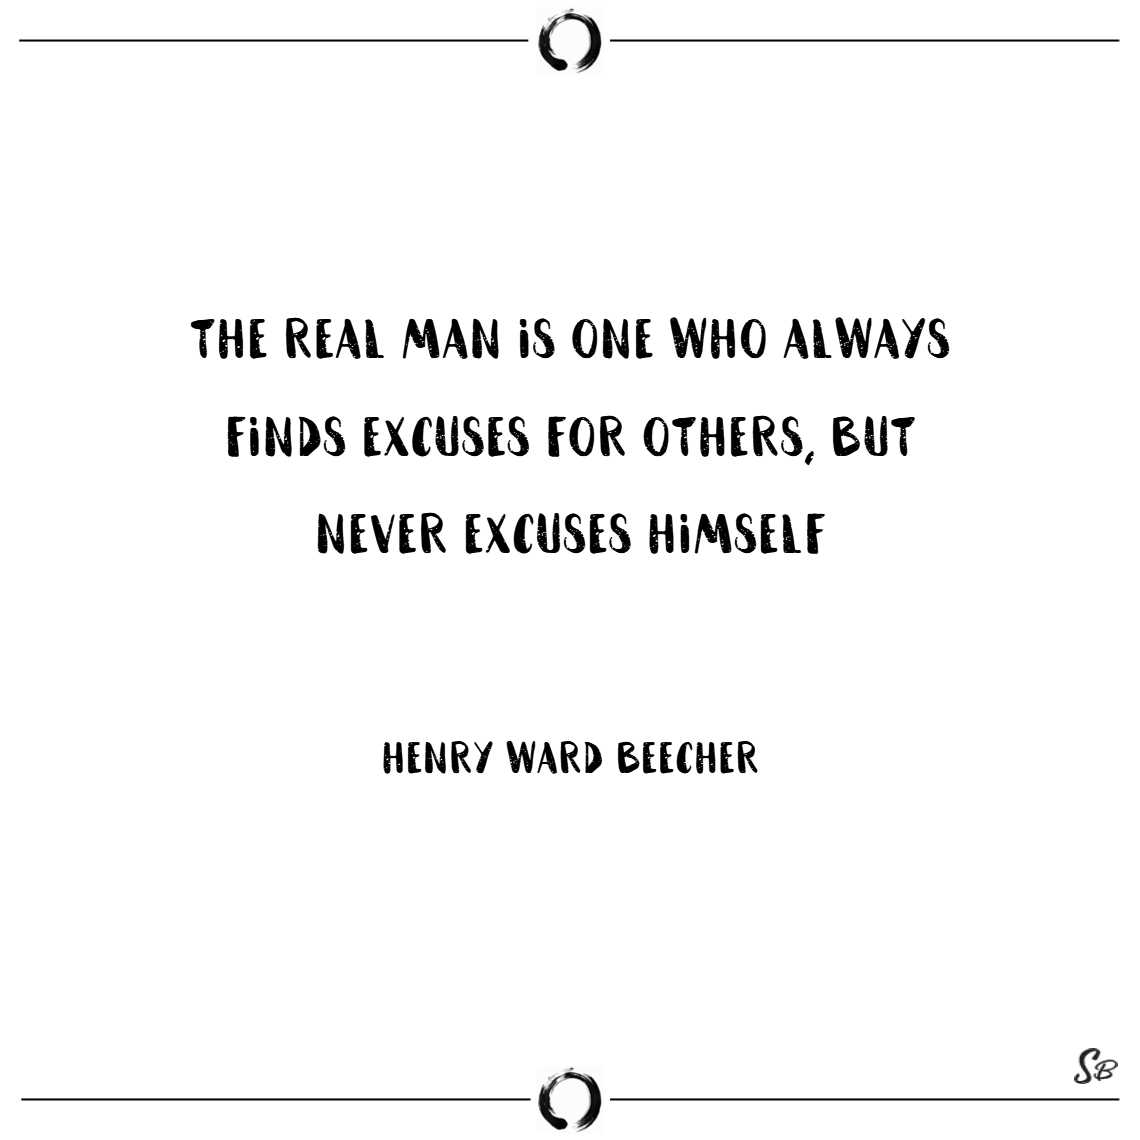 The real man is one who always finds excuses for o